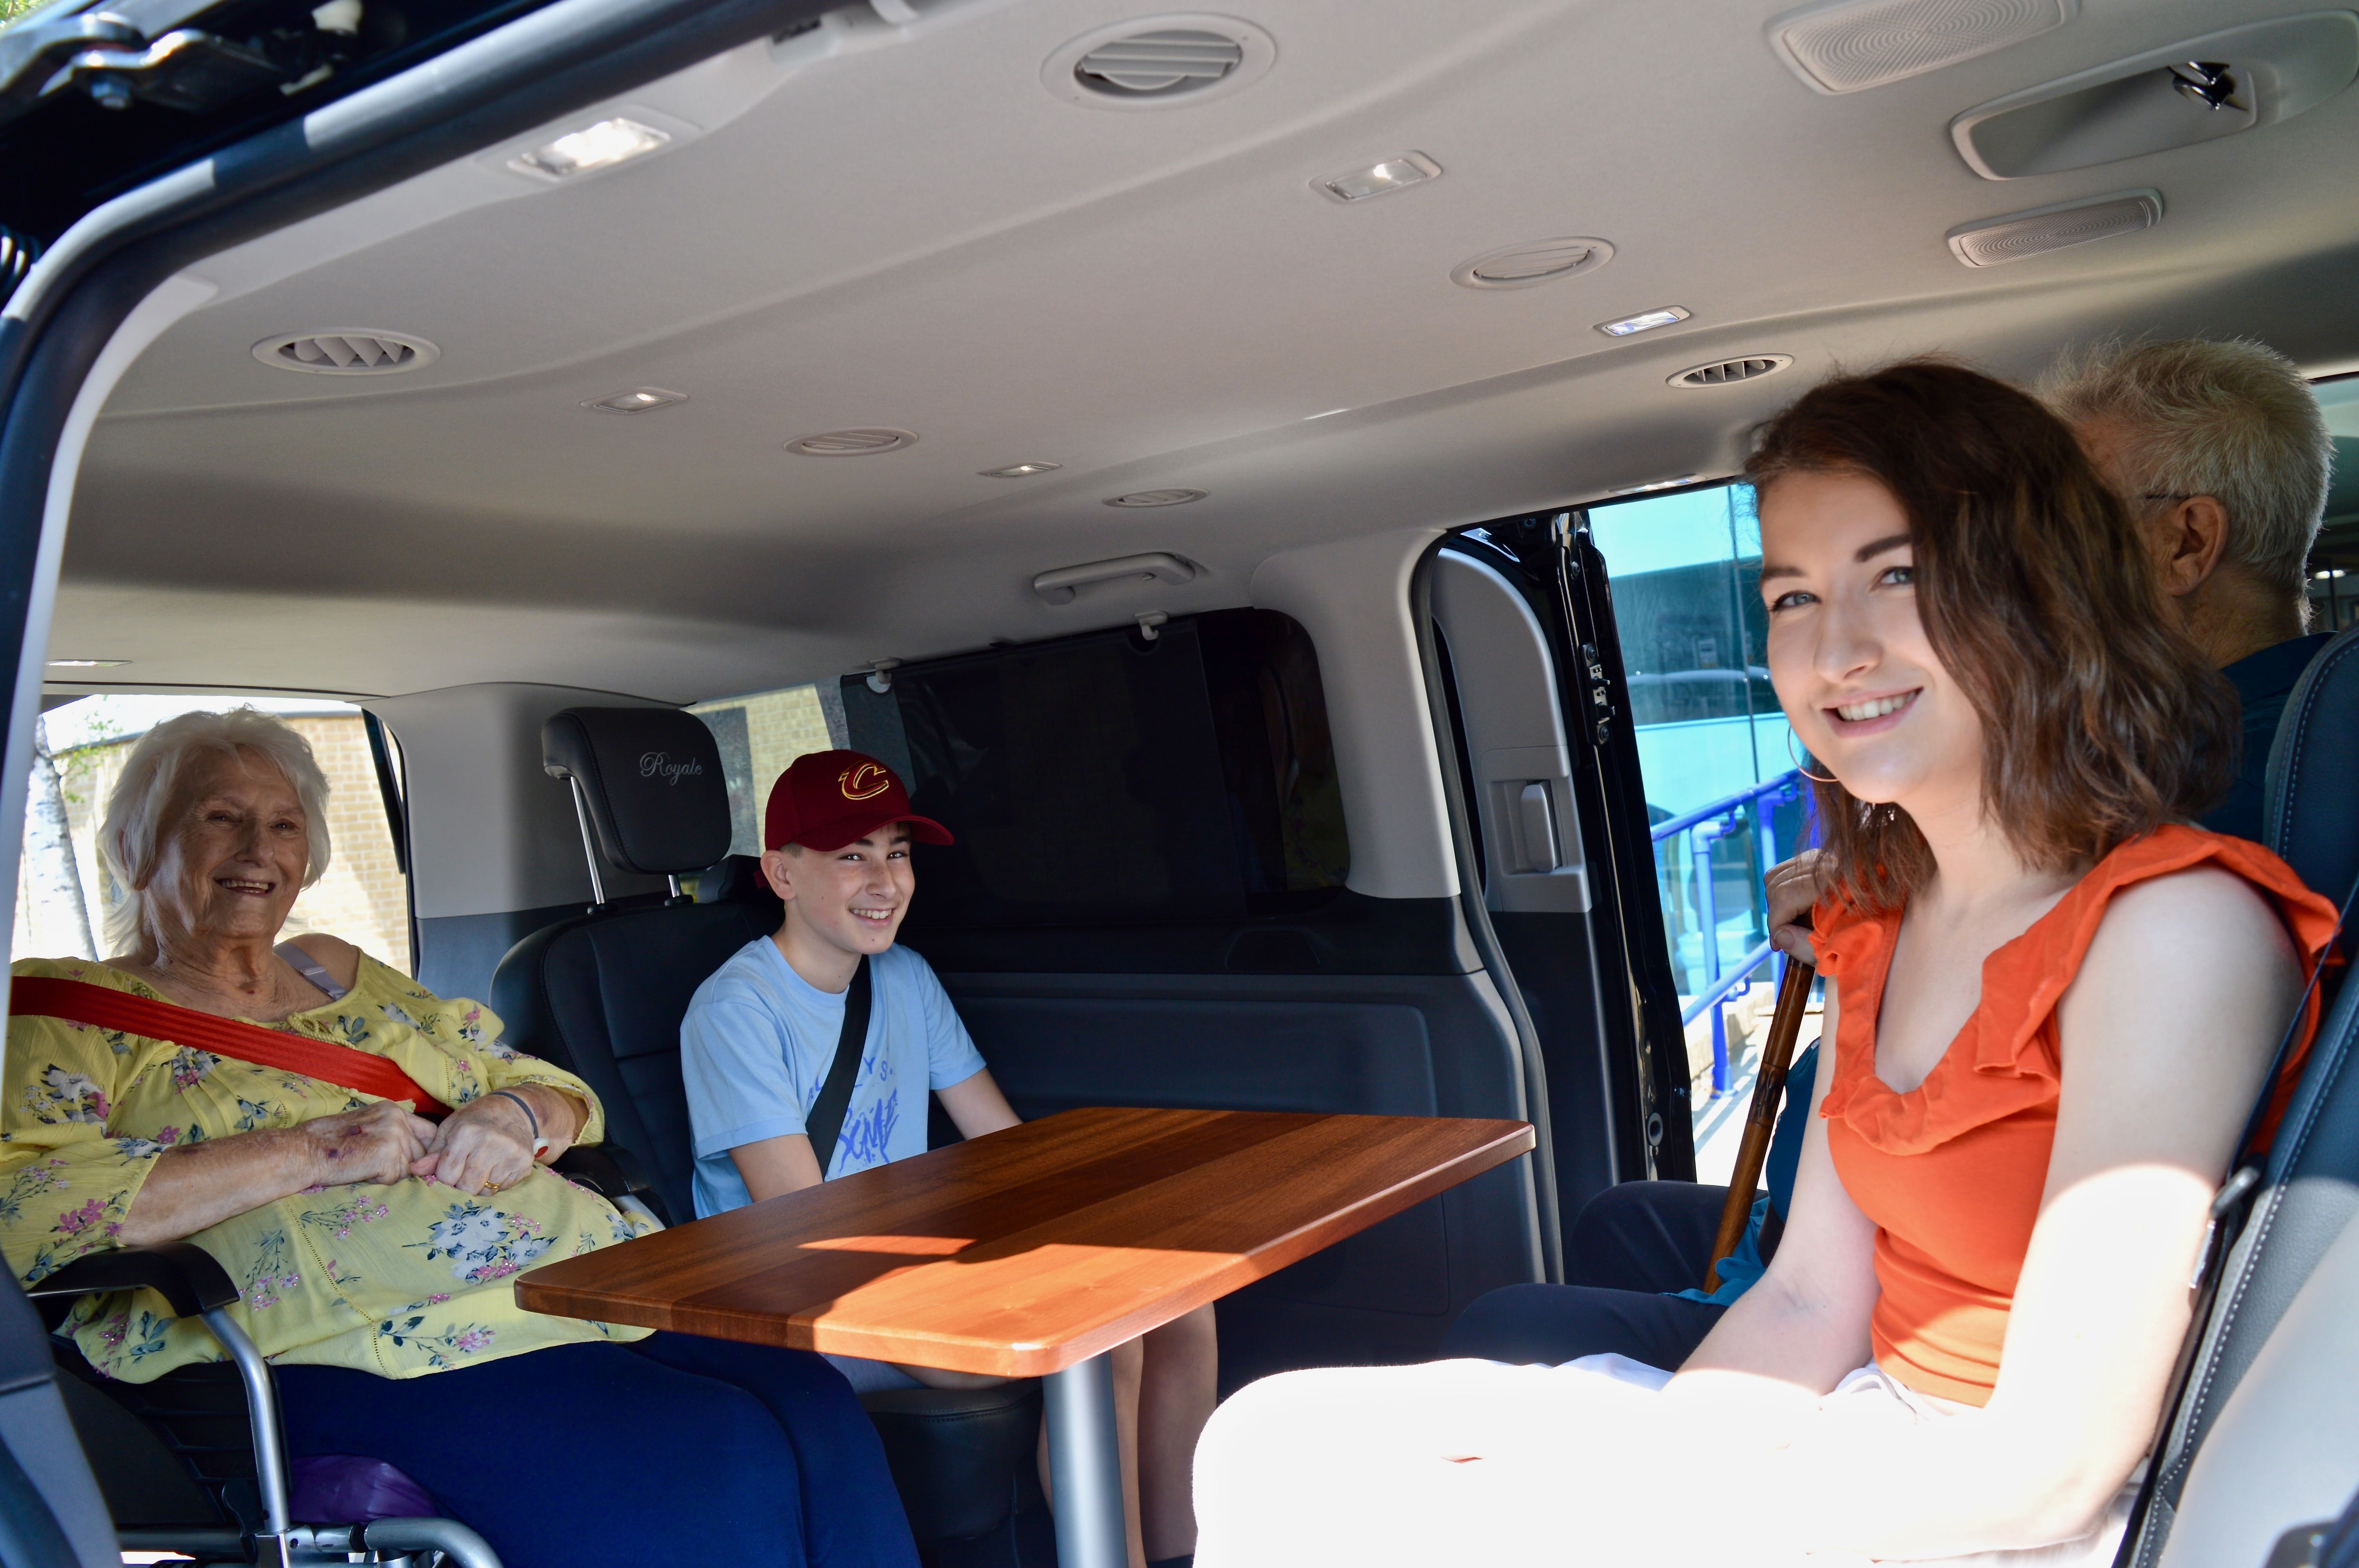 Wheelchair user sitting with family within wheelchair accessible vehicle